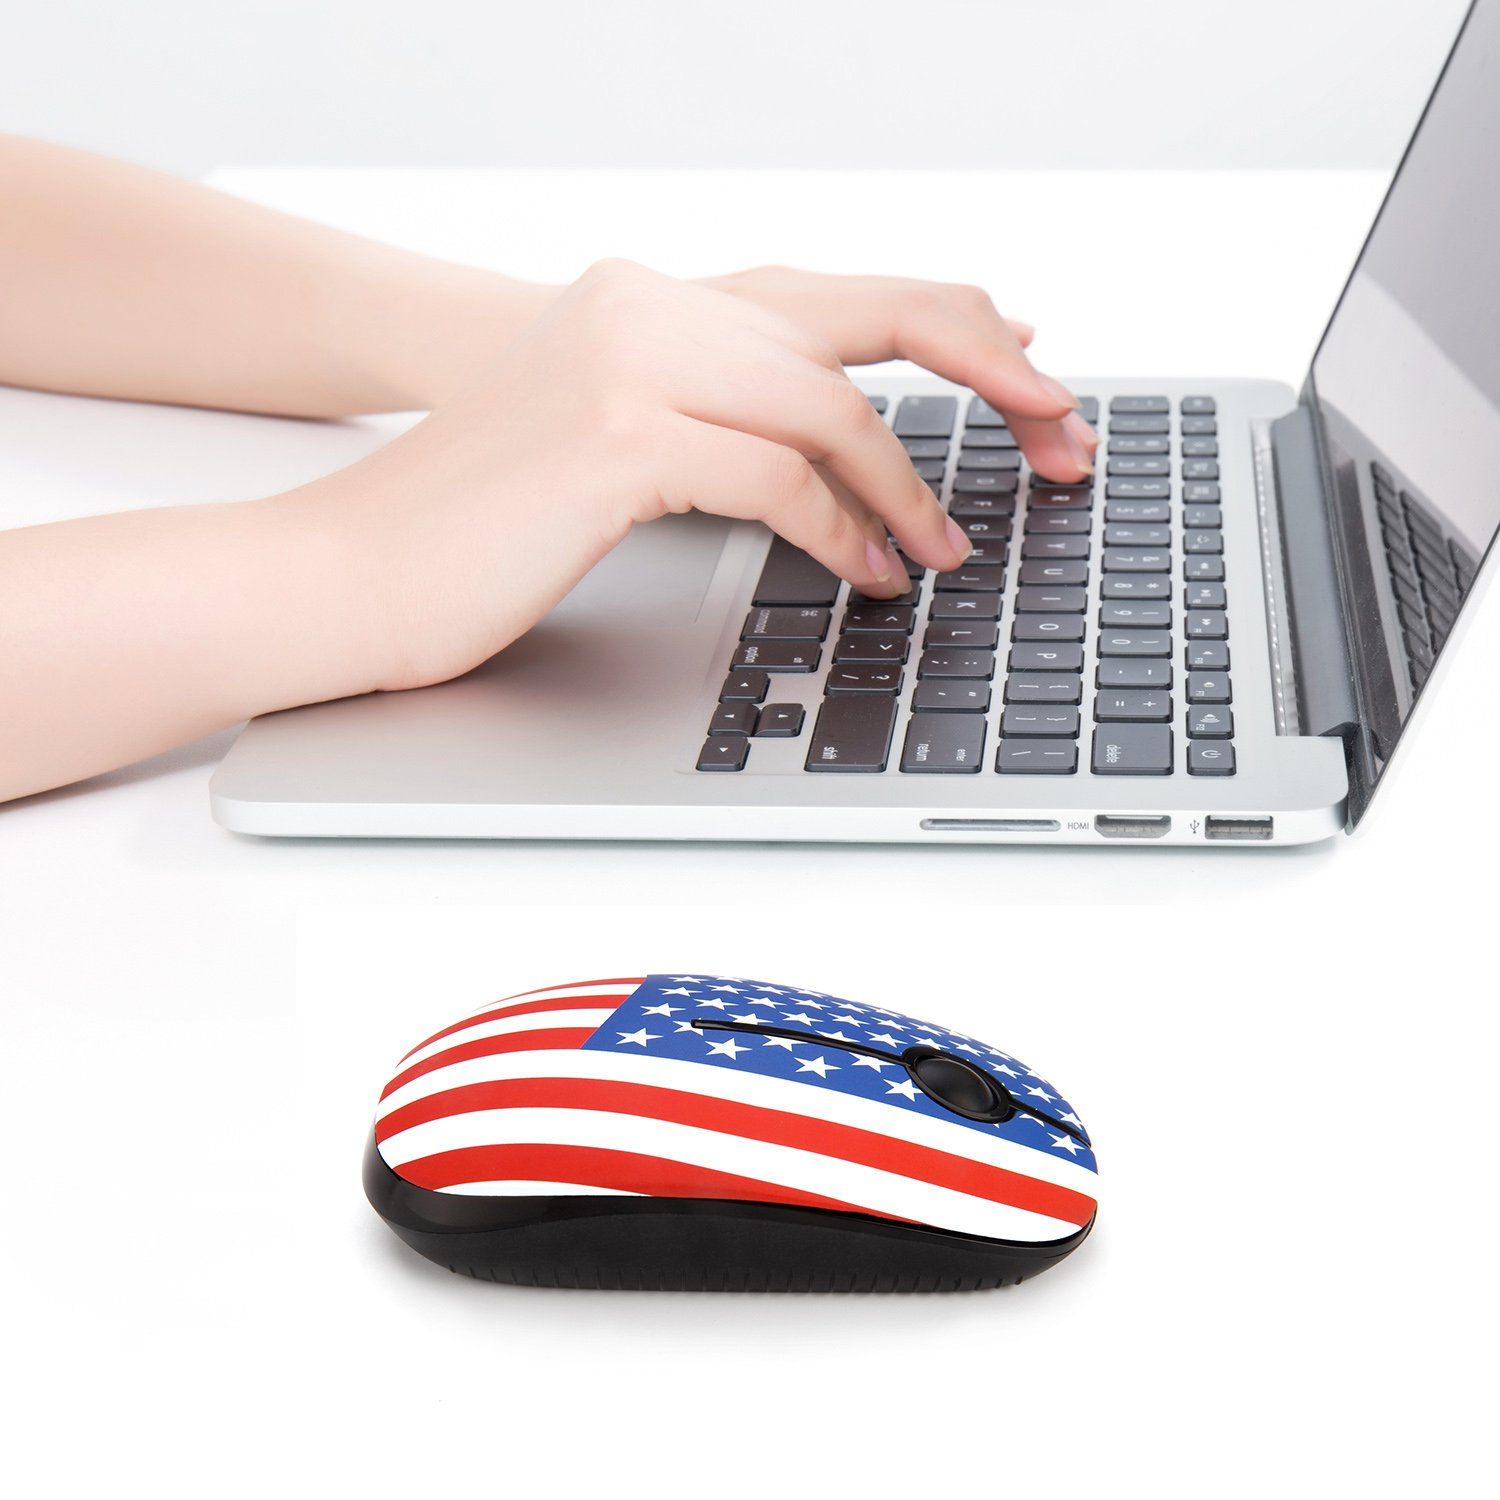 Jelly Comb 2.4G Slim Wireless Mouse with Nano Receiver MacBook Peacock Laptop Less Noise PC Computer Portable Mobile Optical Mice for Notebook